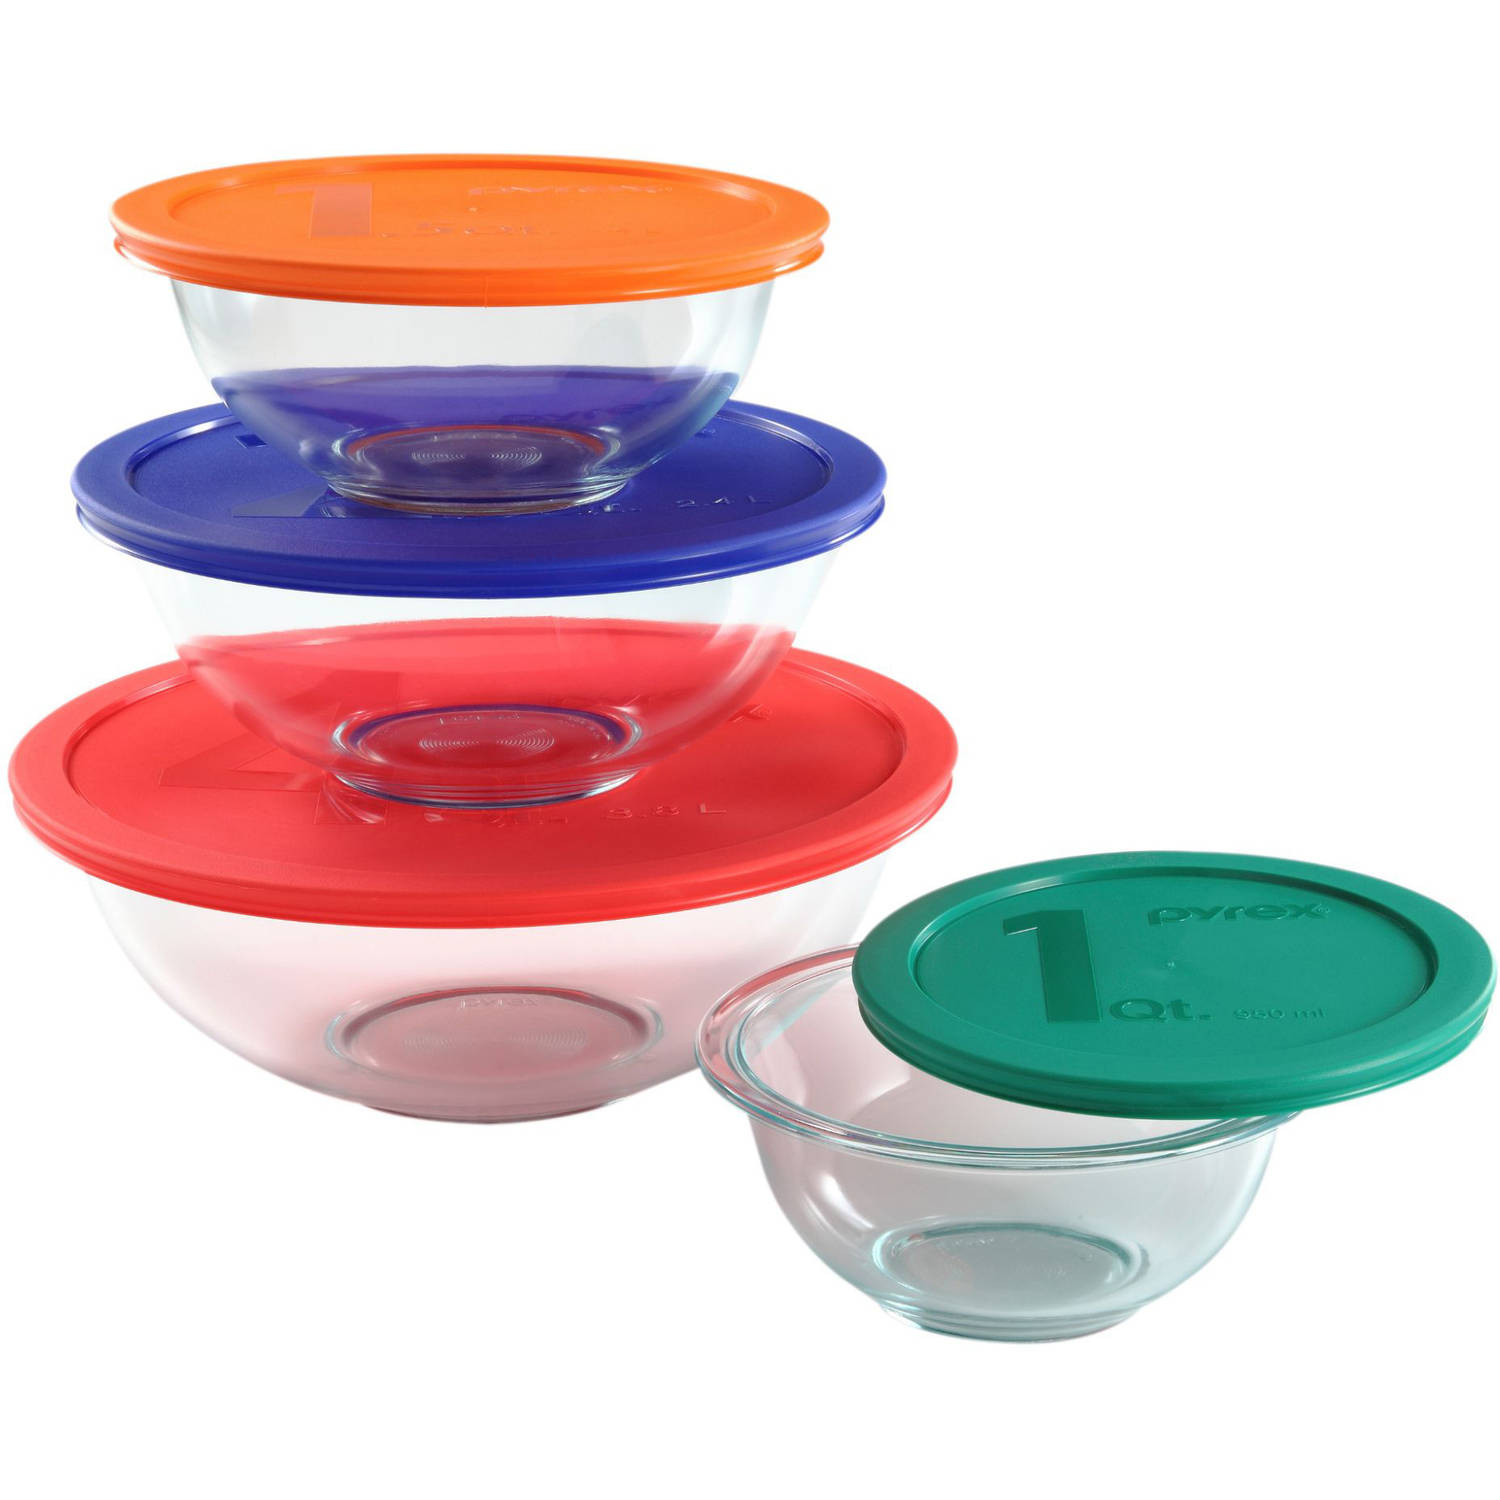 Pyrex 8-pc Mixing Bowl Set Wal-mart